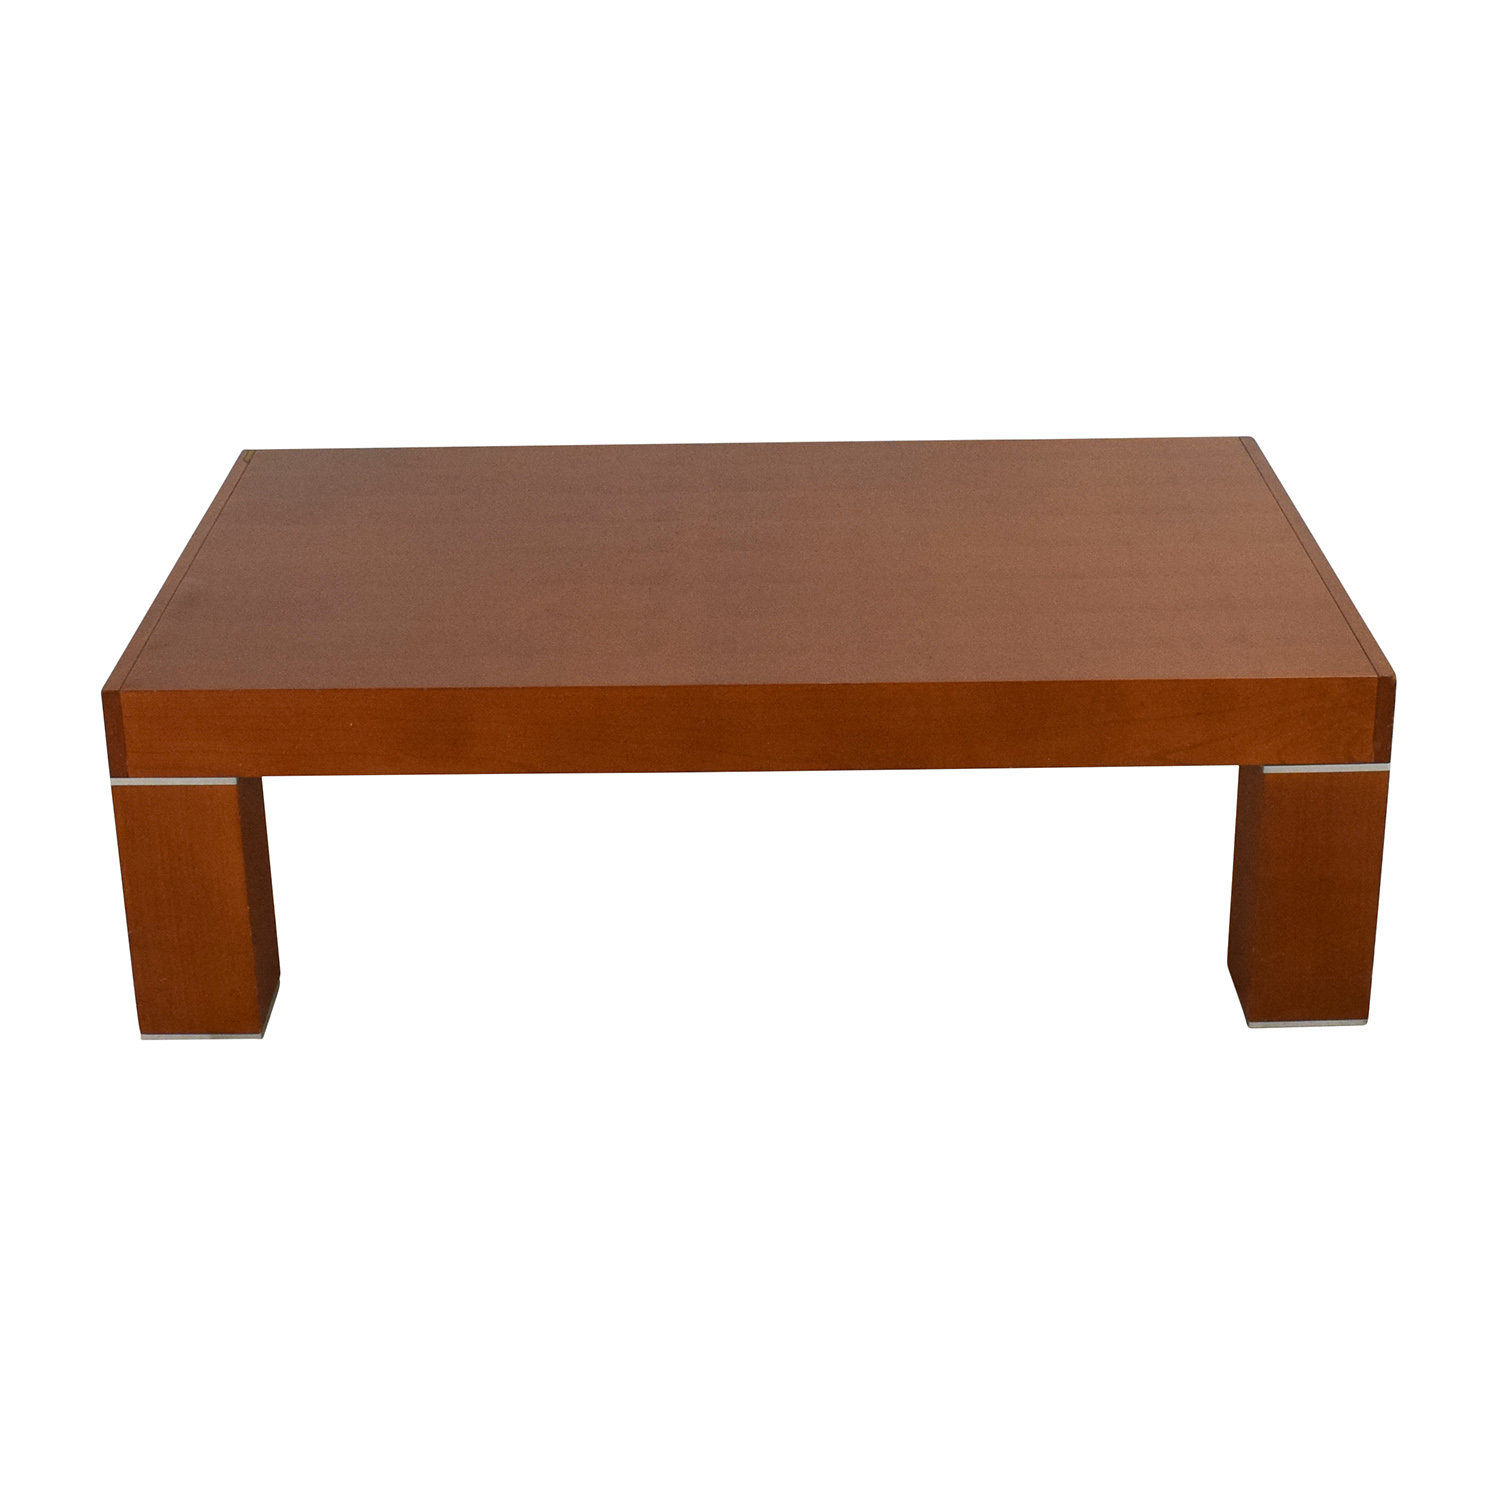 44% OFF Bo Concept Bo Concept White Round Coffee Table Tables